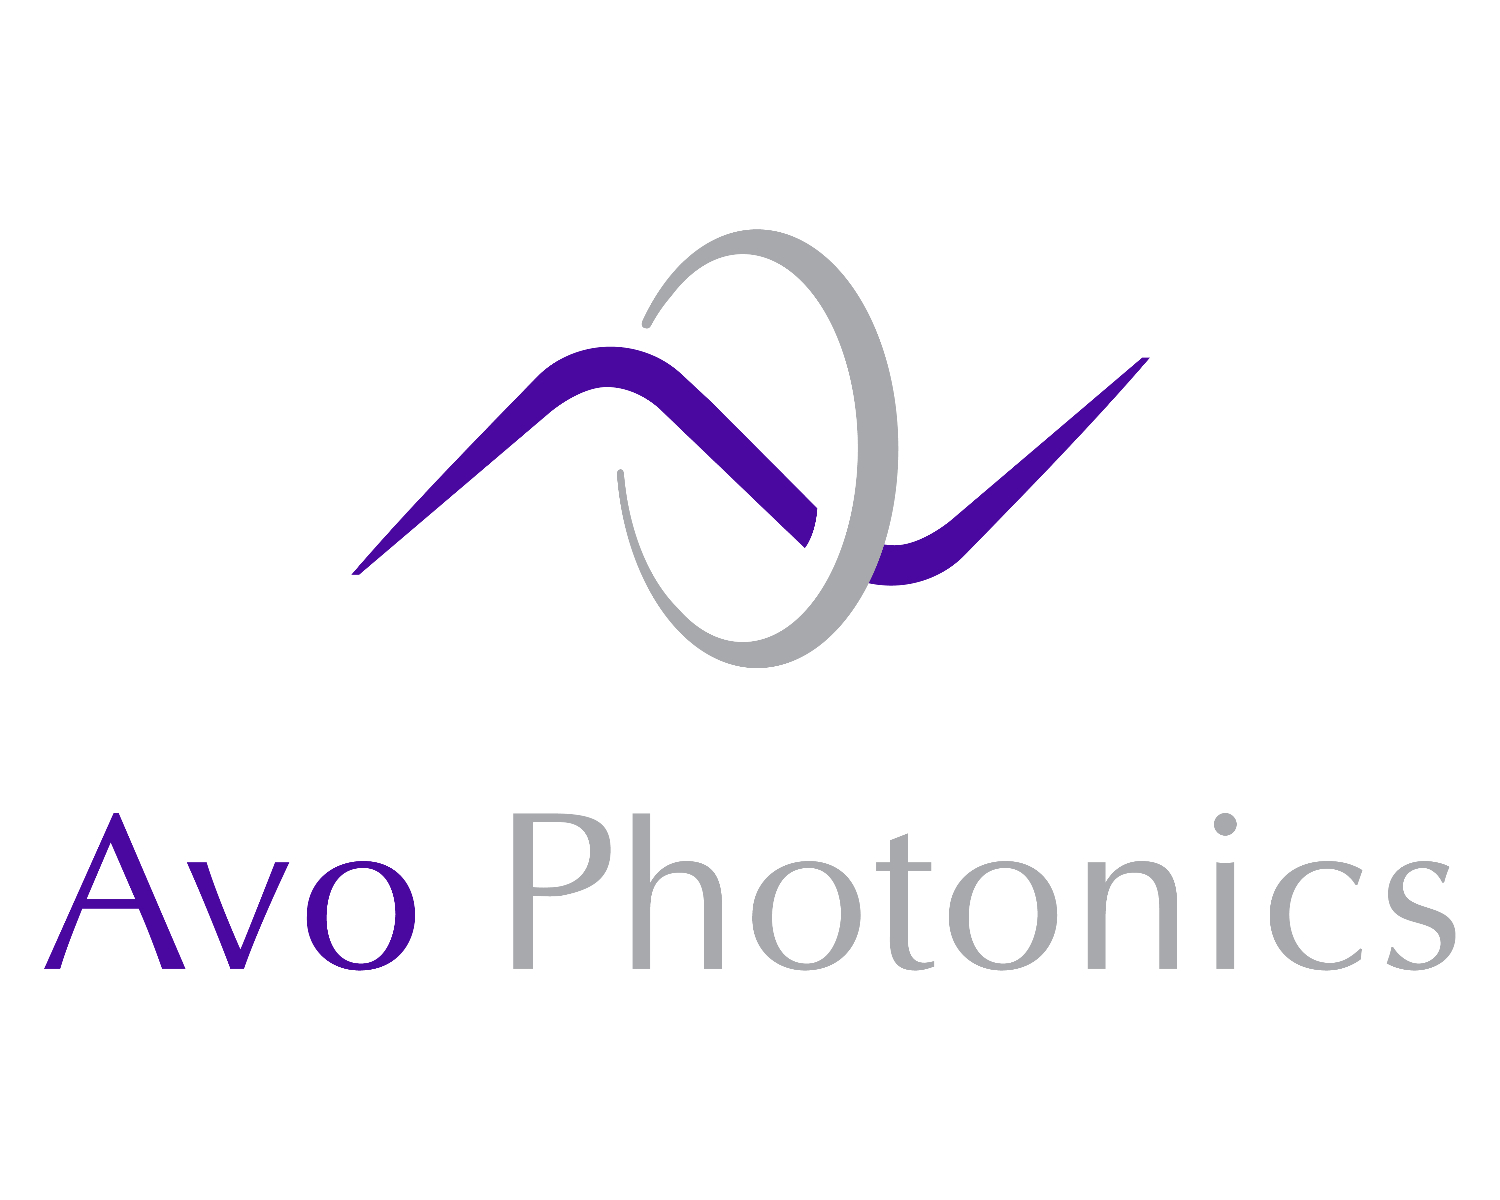 Avo Photonics